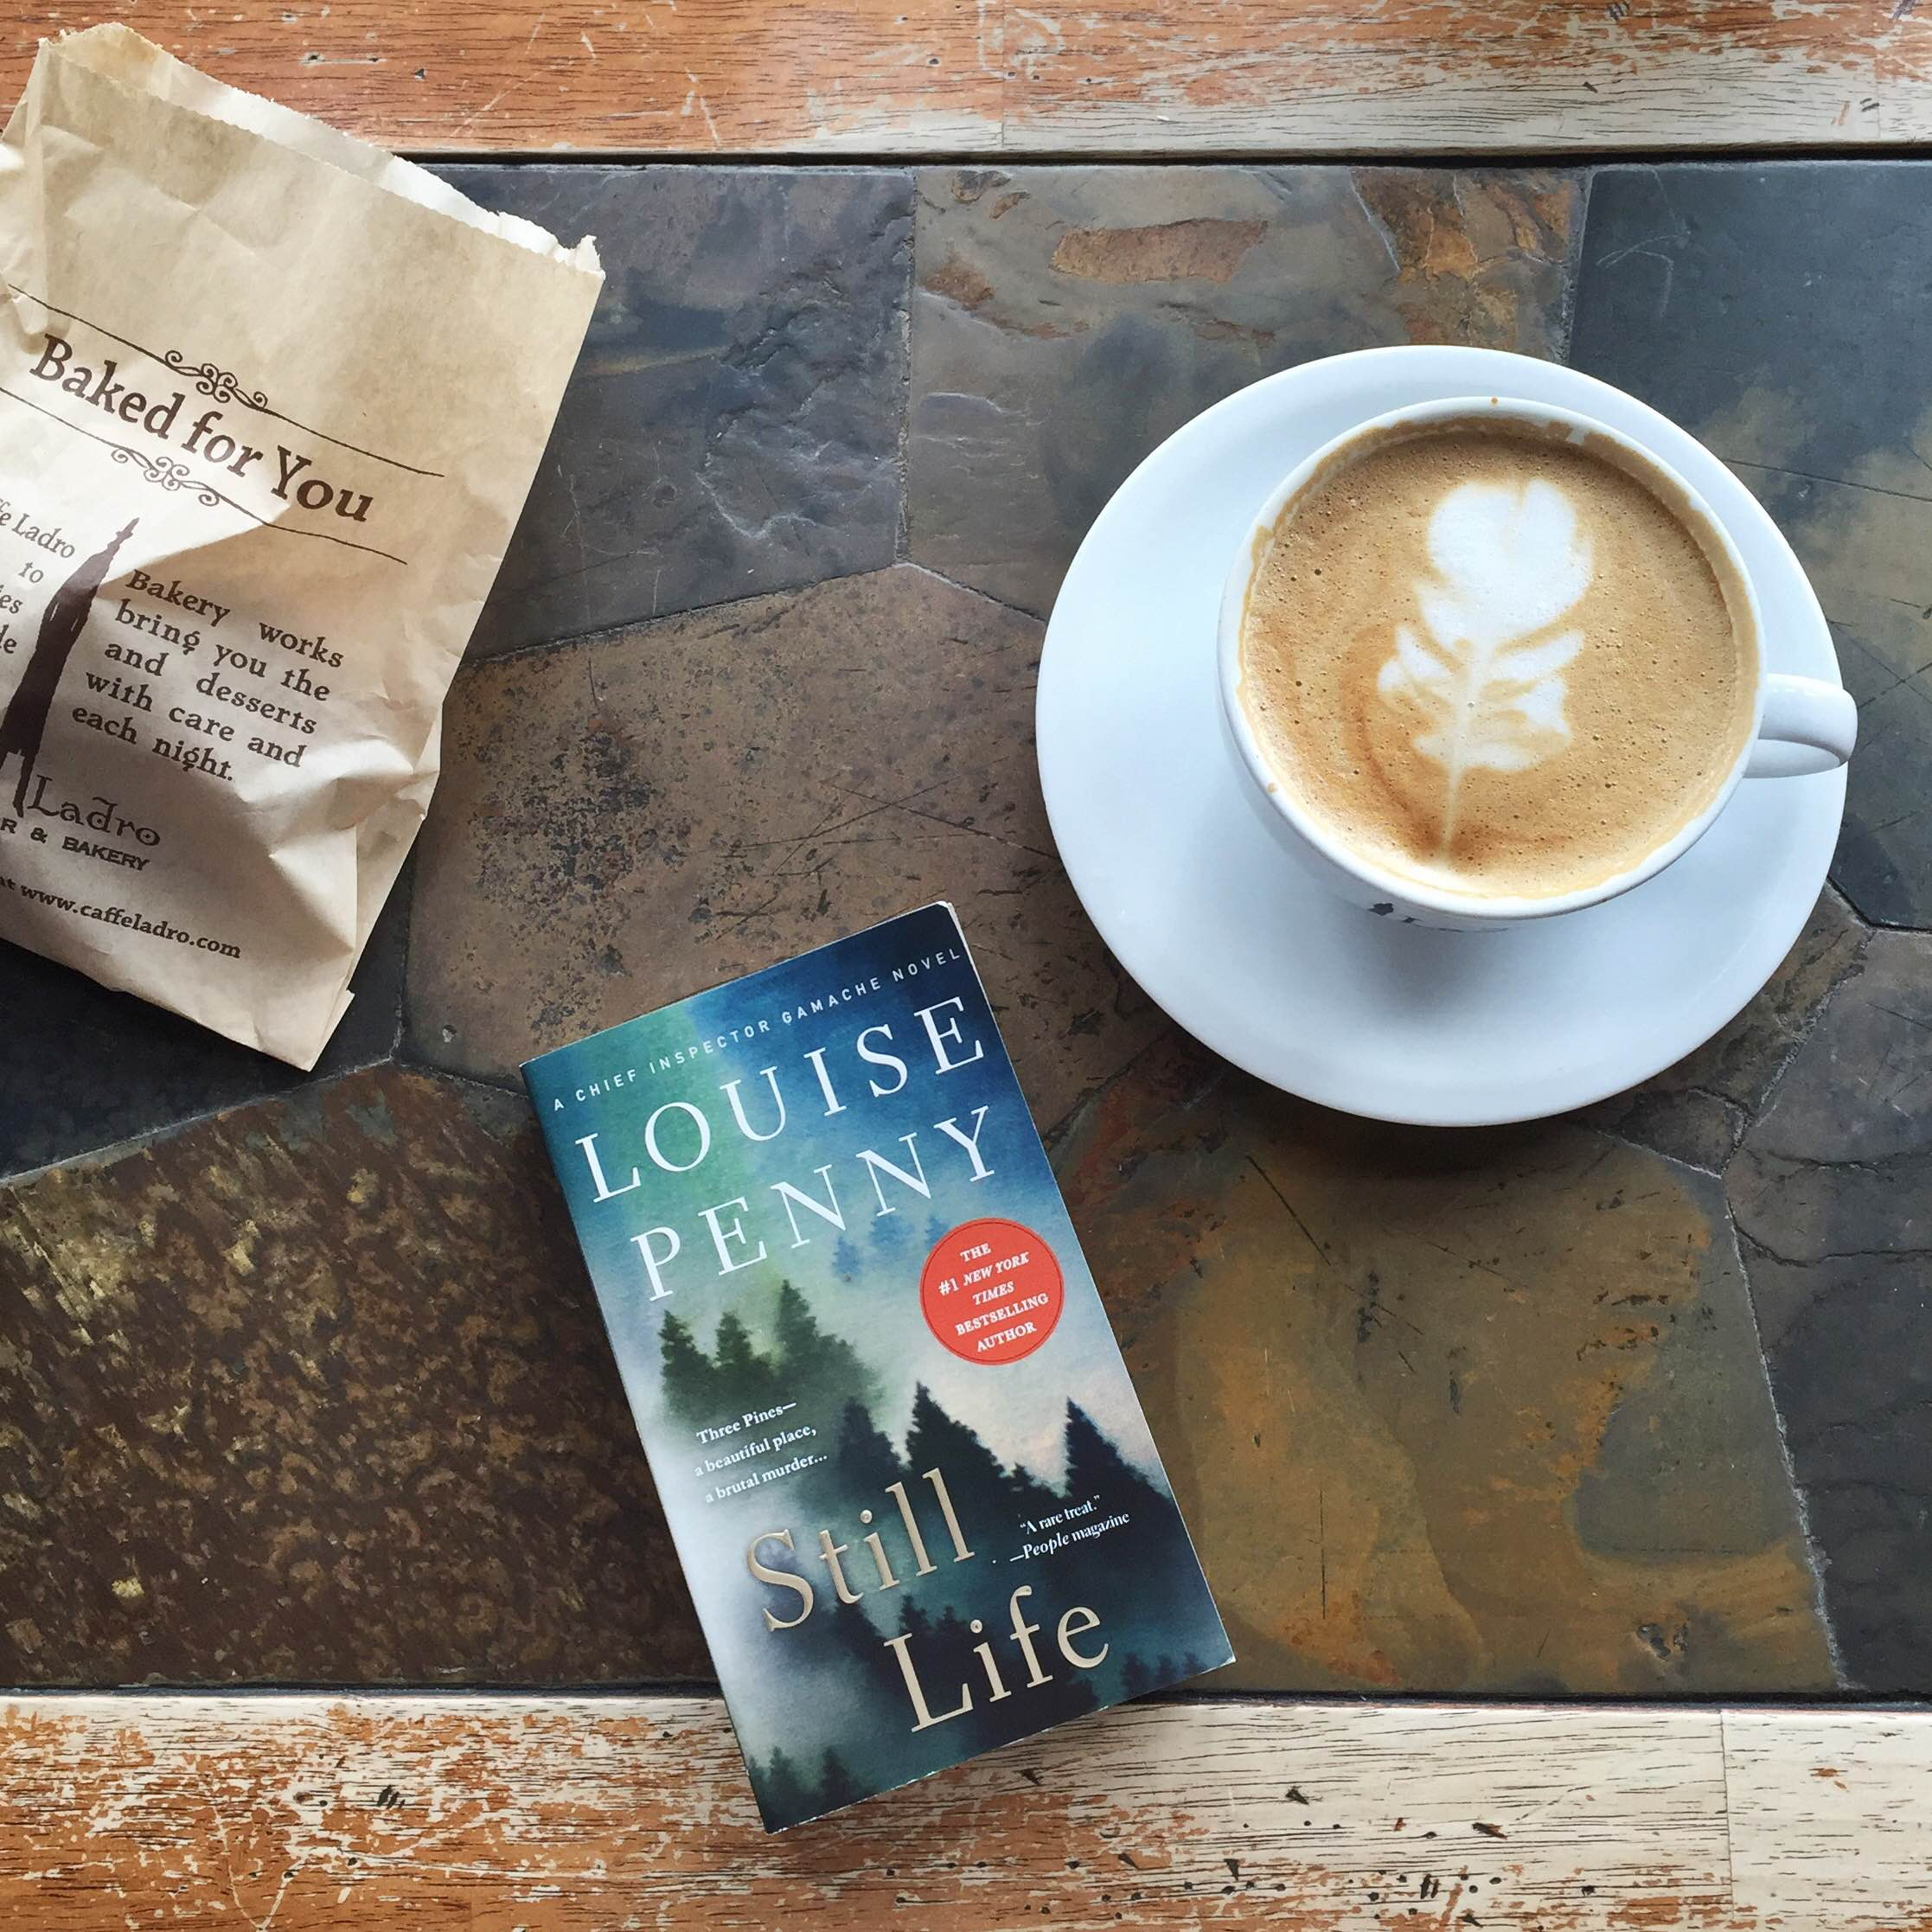 Still Life by Louise Penny | Dream by Day